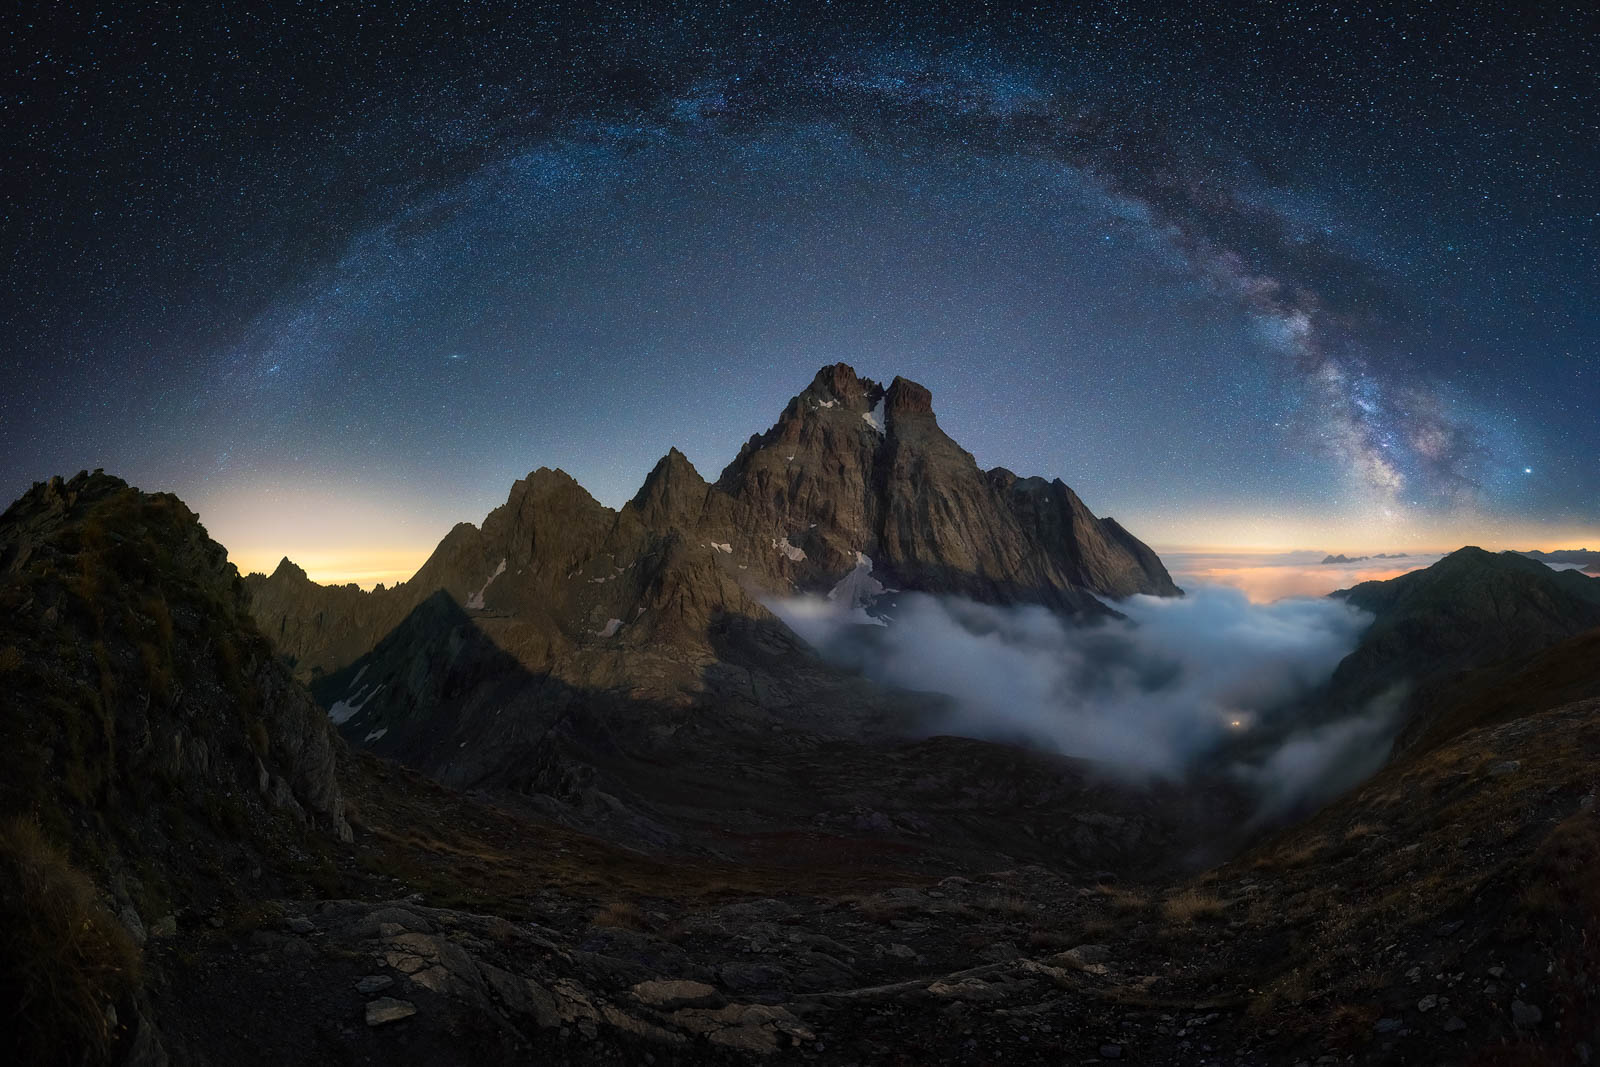 PARCO DEL MONVISO - NIGHT PHOTOGRAPHY